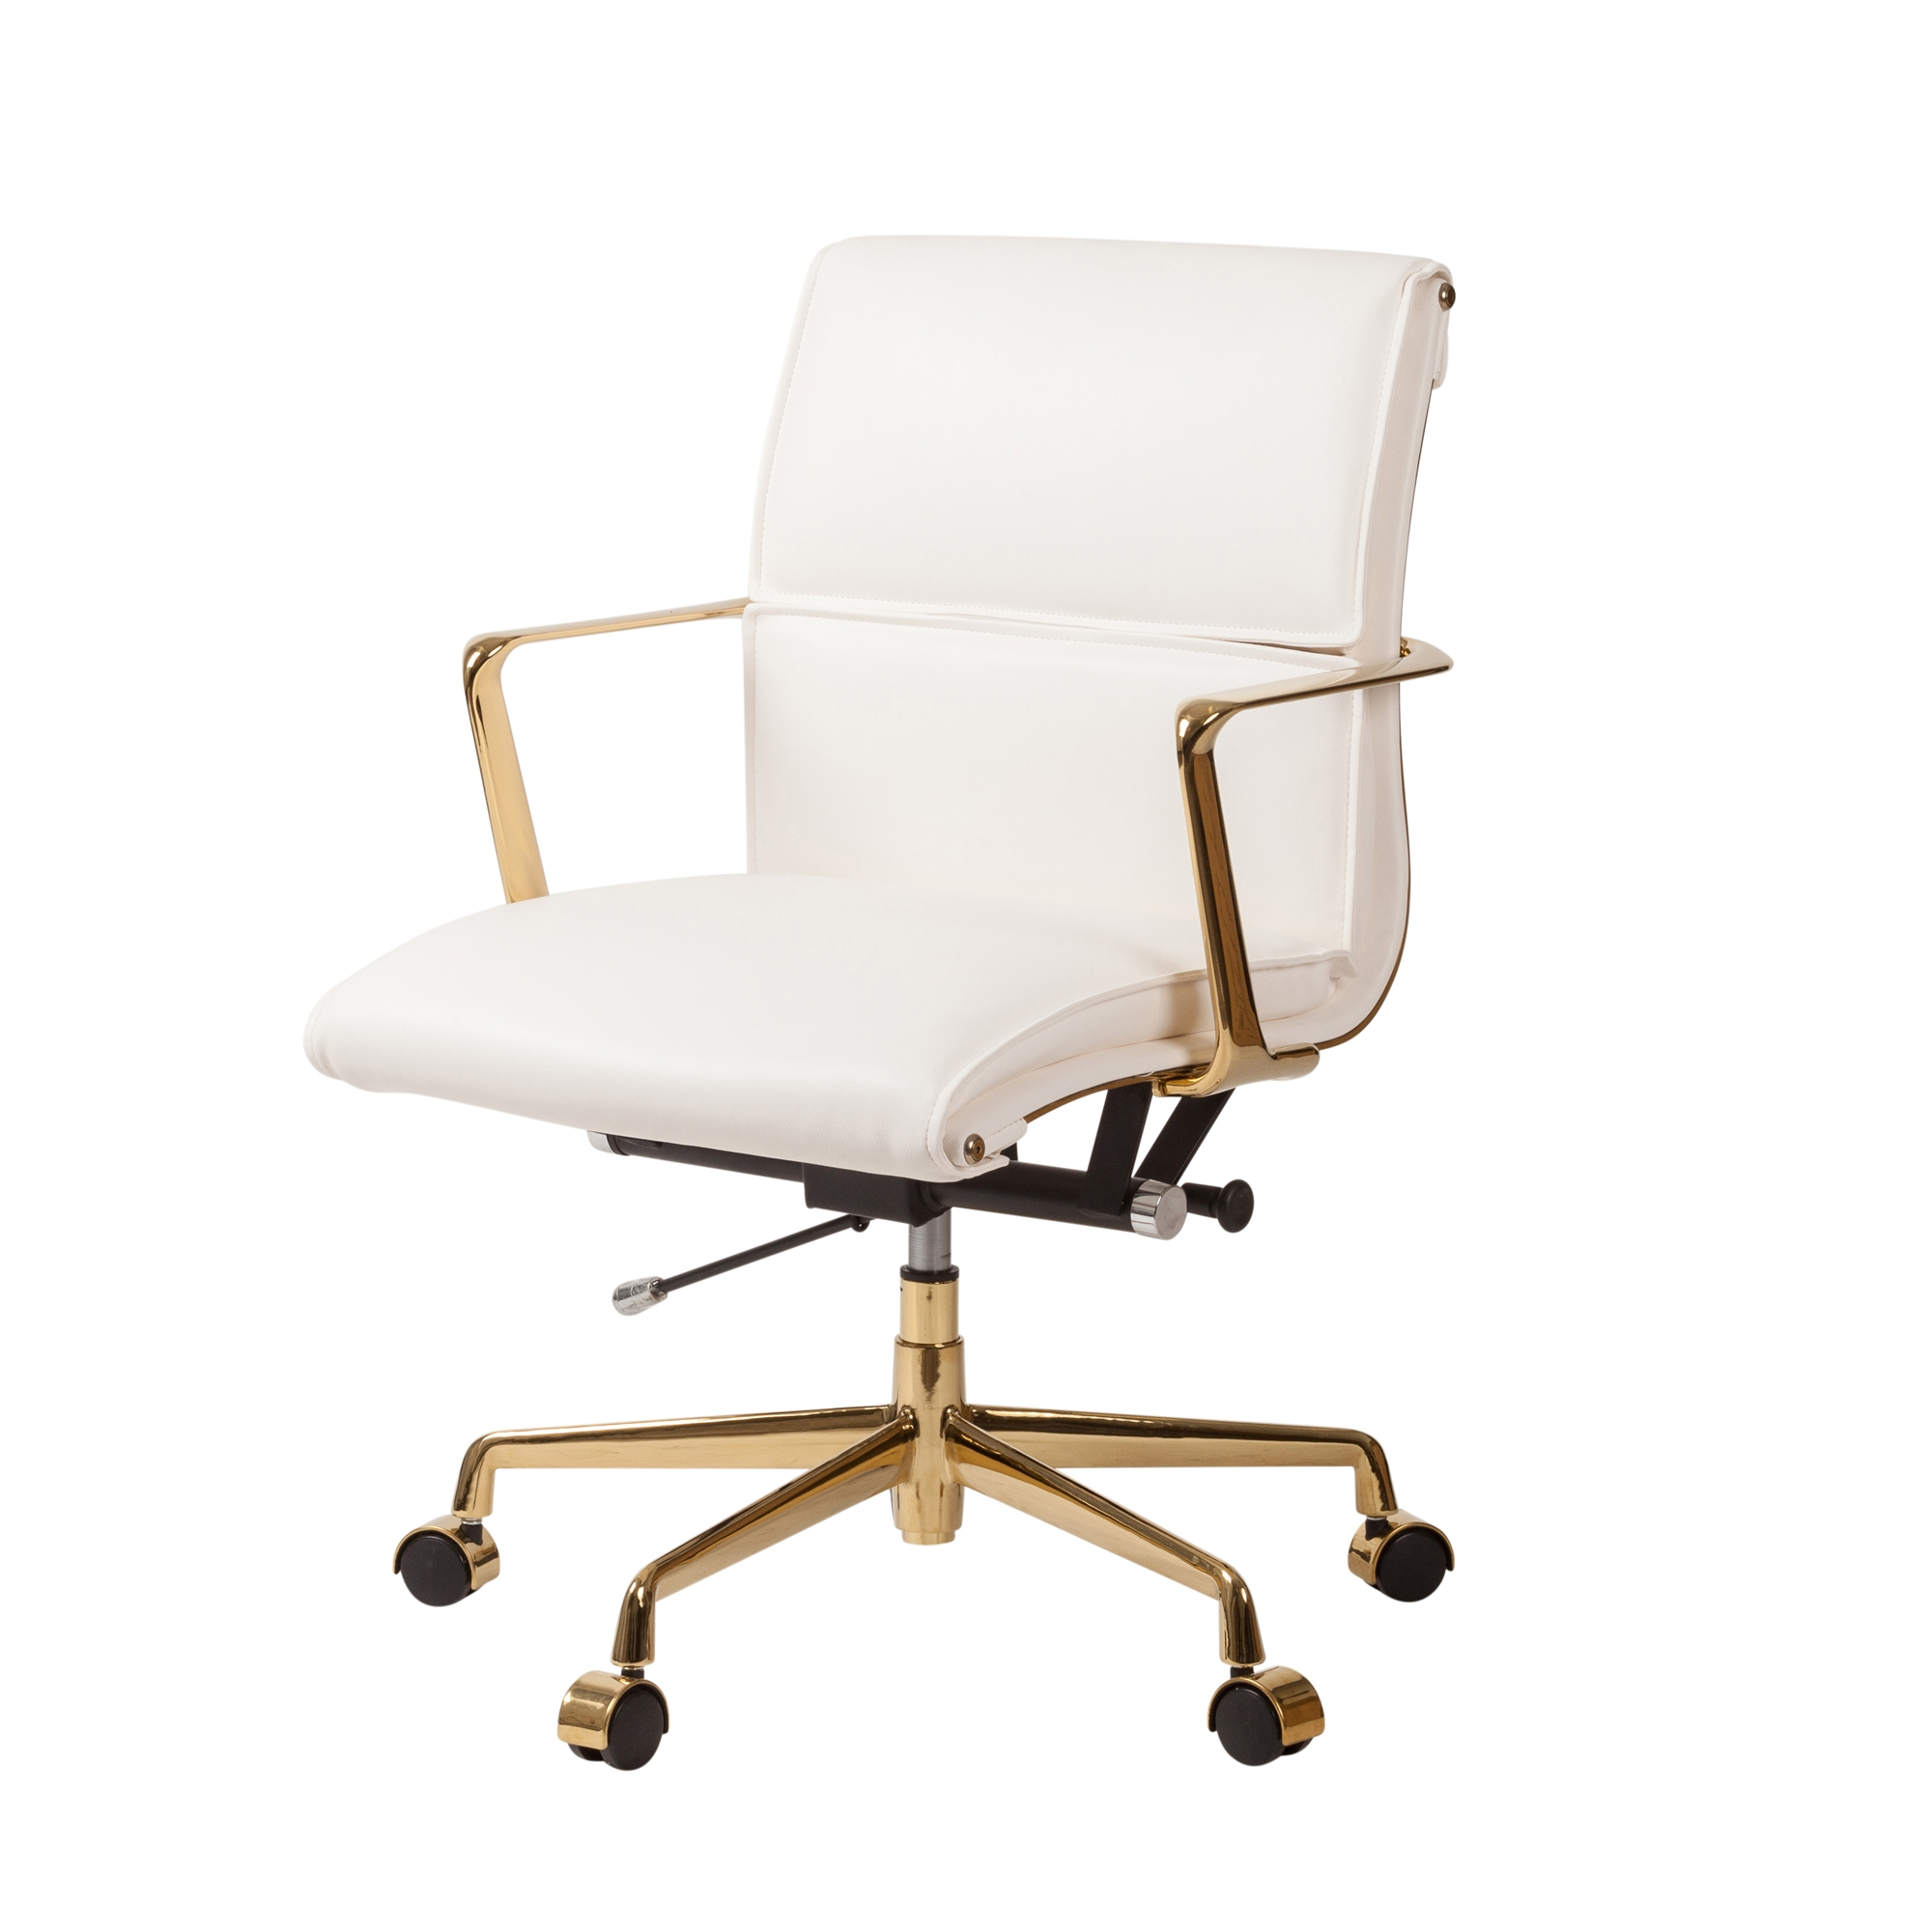 Cooper Mid Century Modern Office Chair With Gold Base White Leather